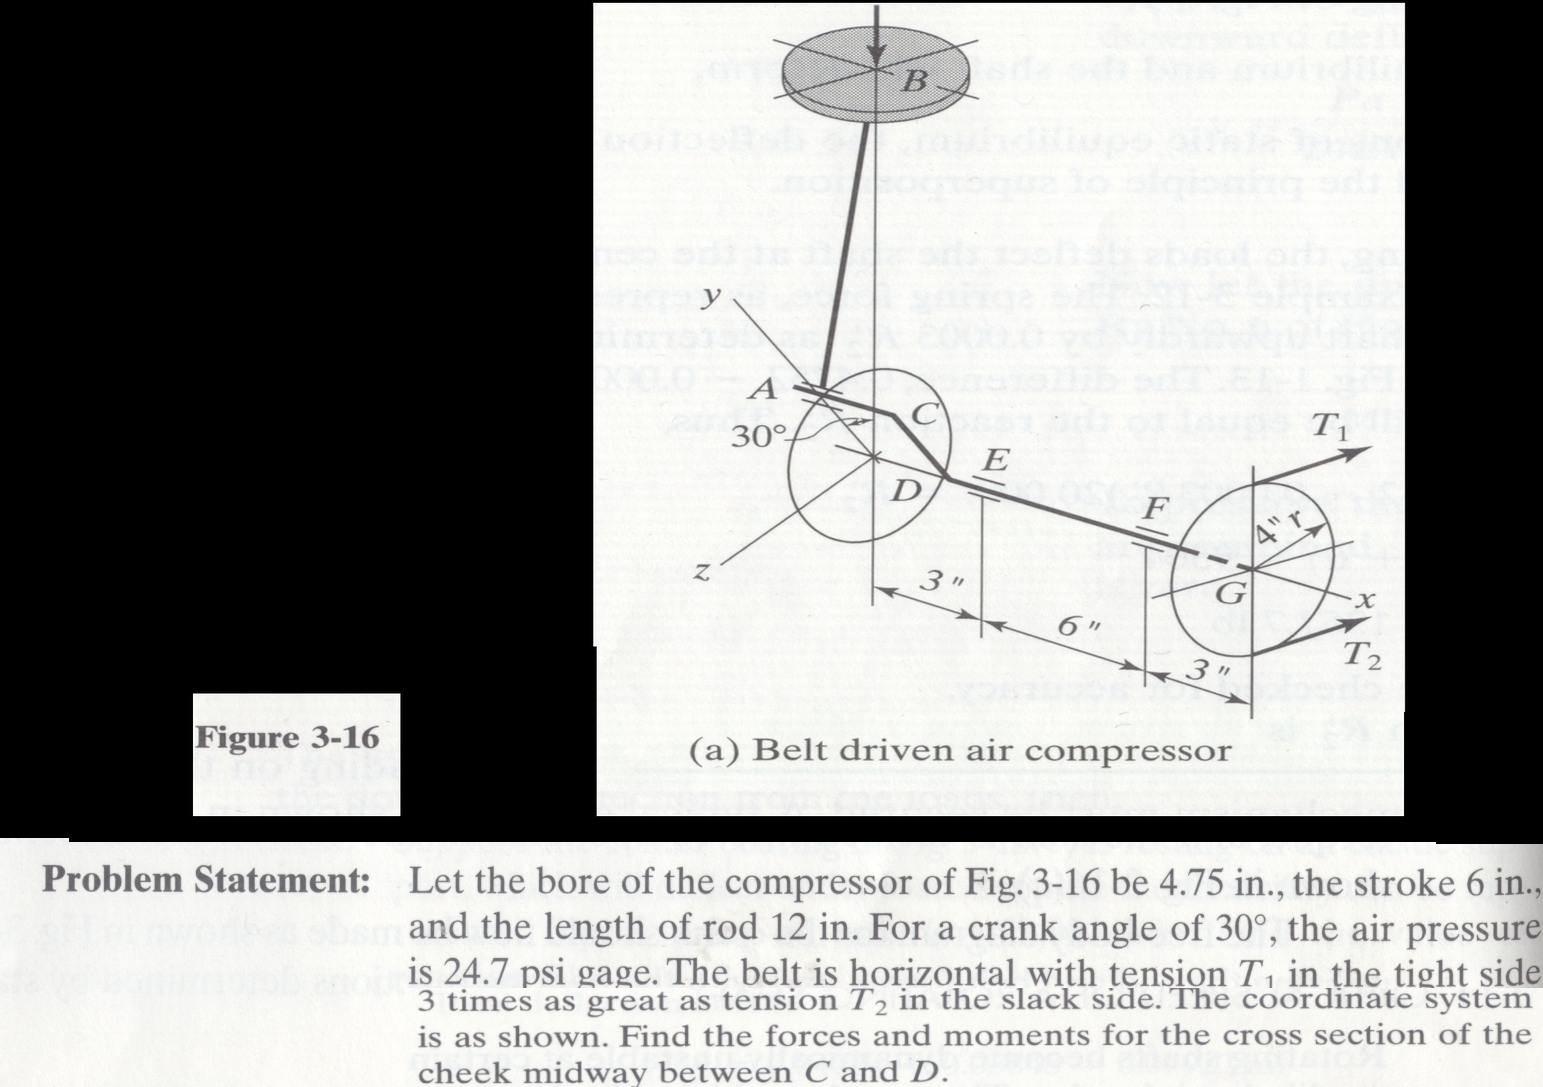 Let the bore of the compressor of Fig. 3-16 be 4.7